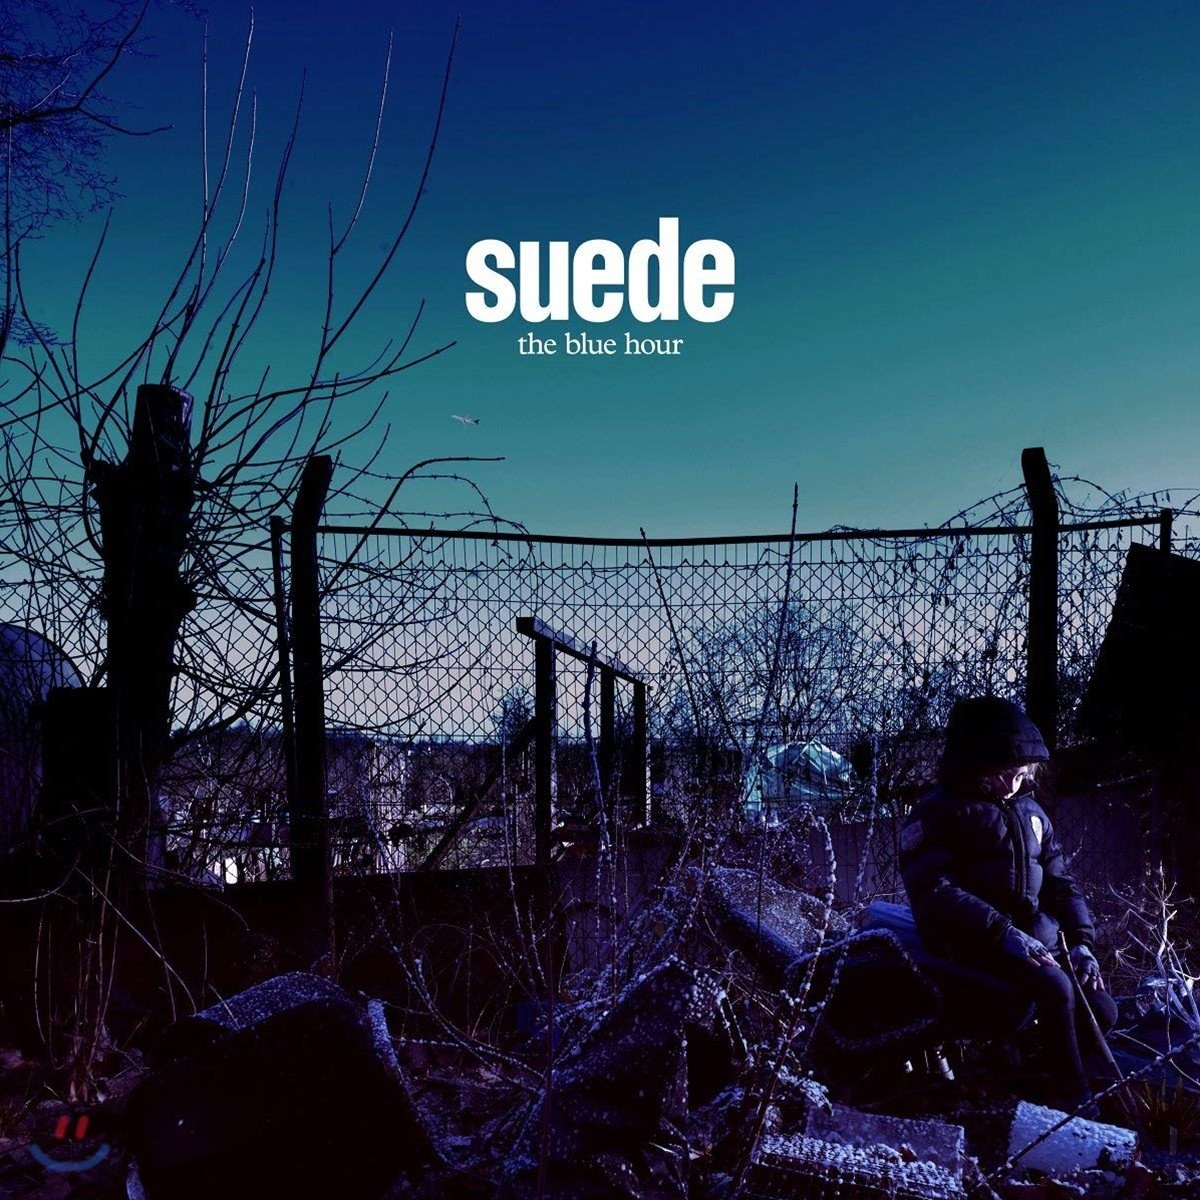 Suede - The Blue Hour 스웨이드 8집